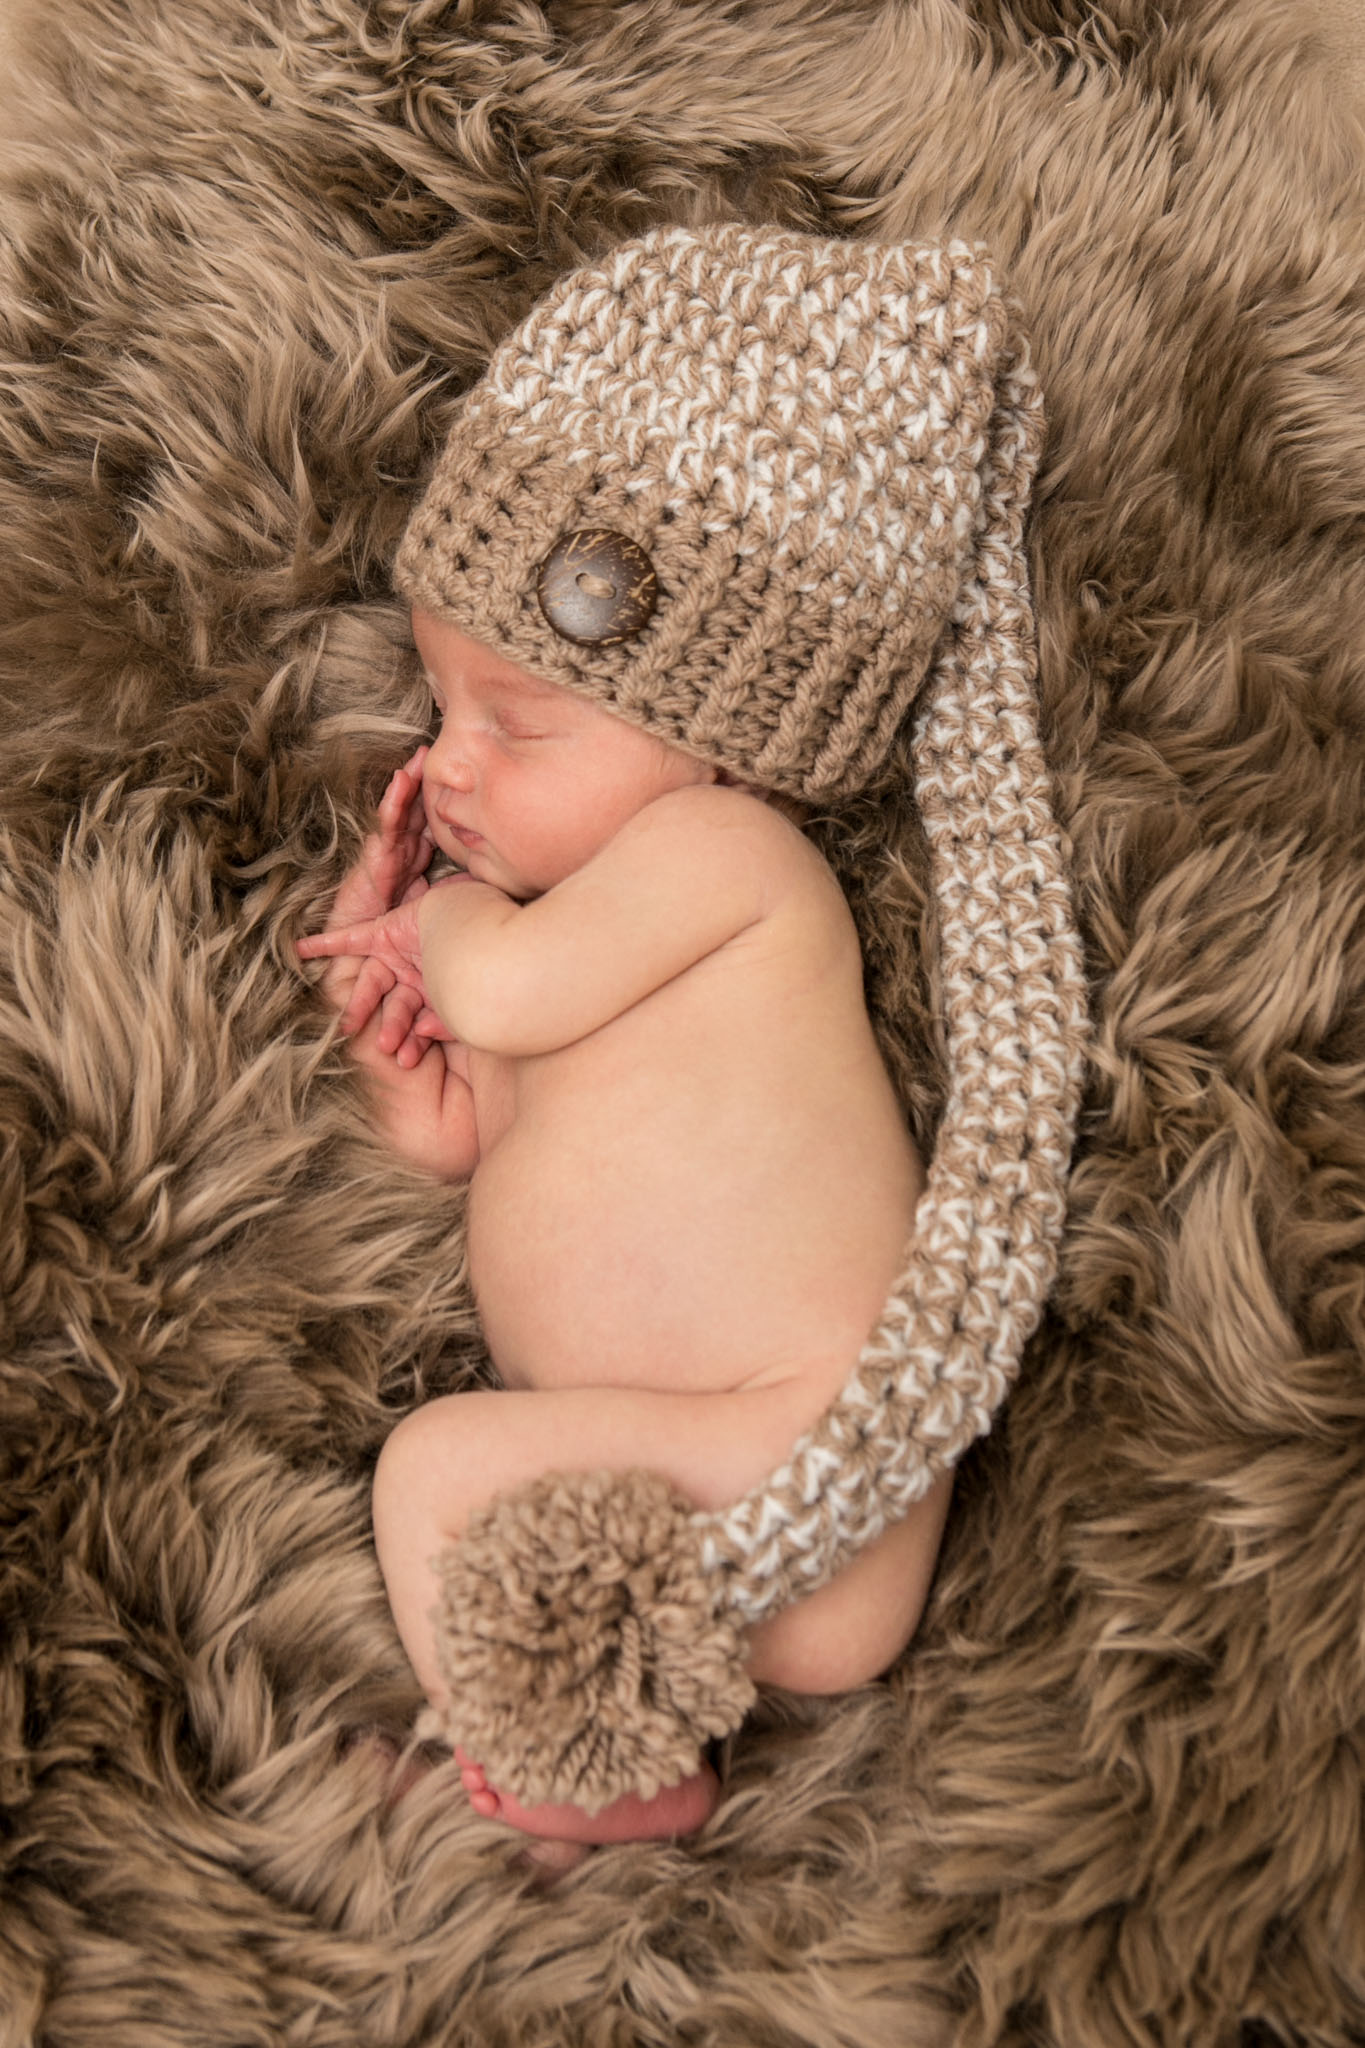 Newborn session with baby Arthur, Tania Miller Photography, Pontypool newborn photographer